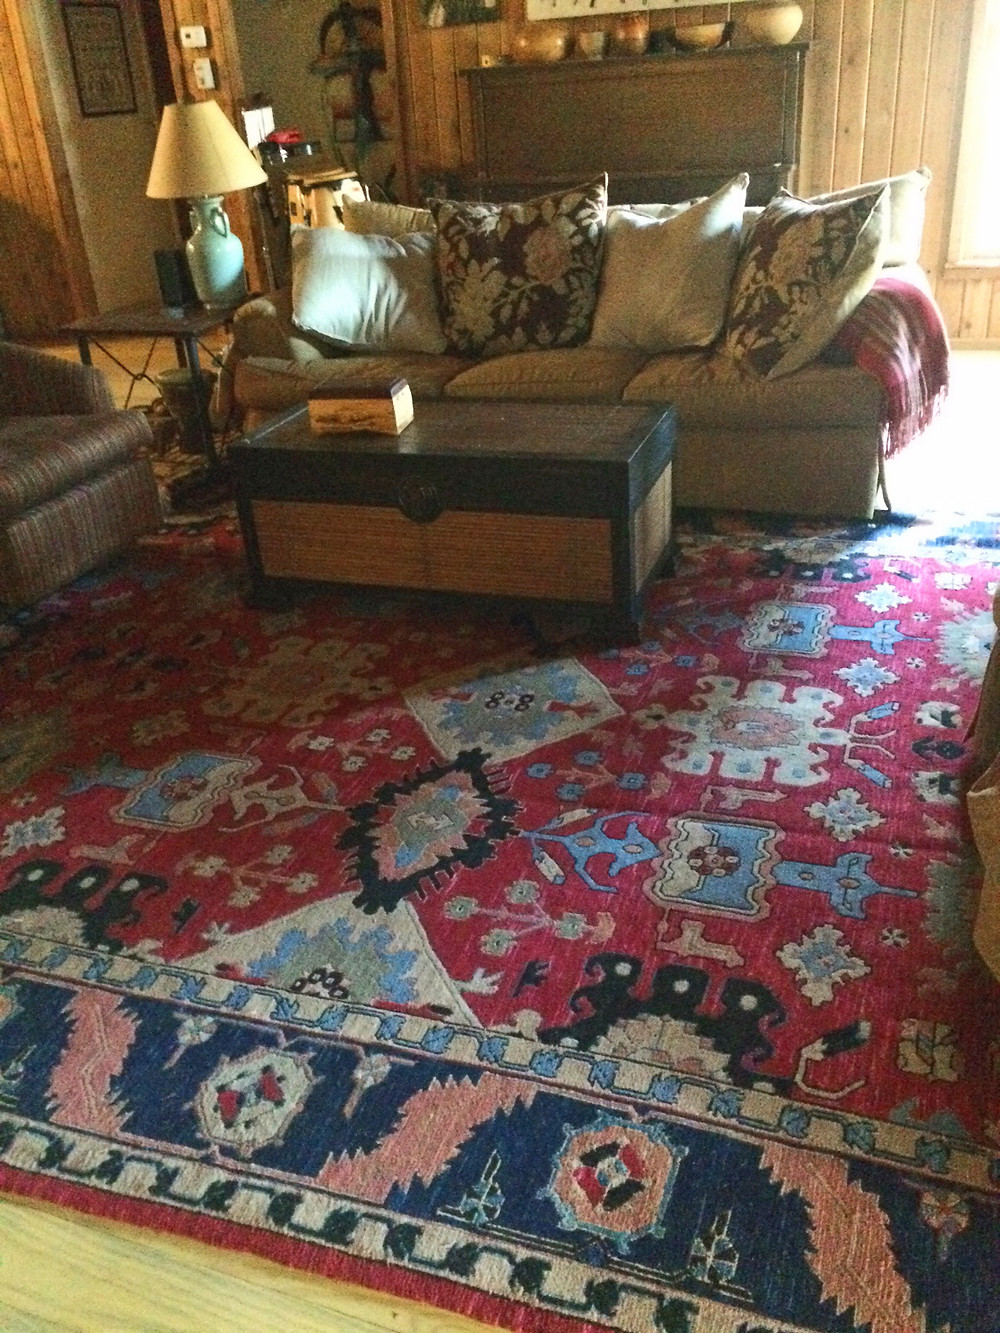 the rug!